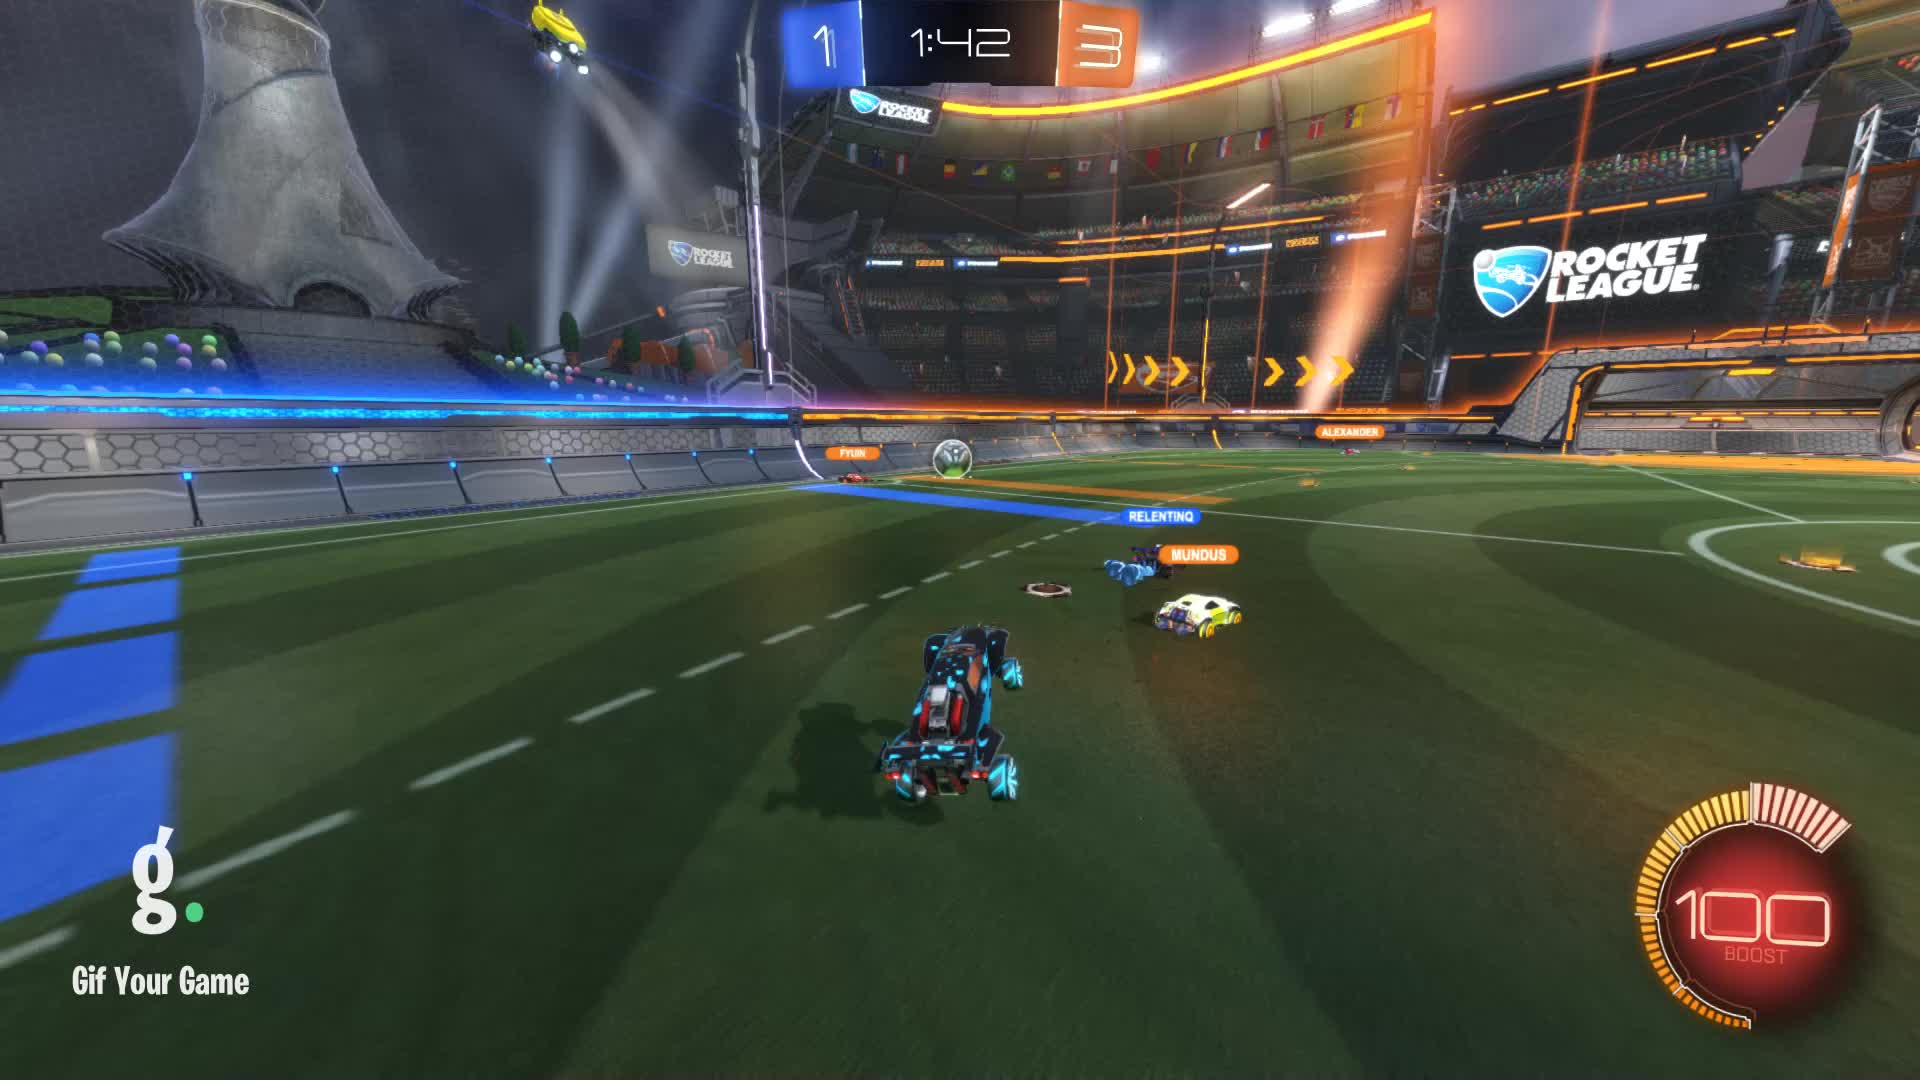 Assist, Gif Your Game, GifYourGame, Rocket League, RocketLeague, Timper [NL], Assist 3: Timper [NL] GIFs